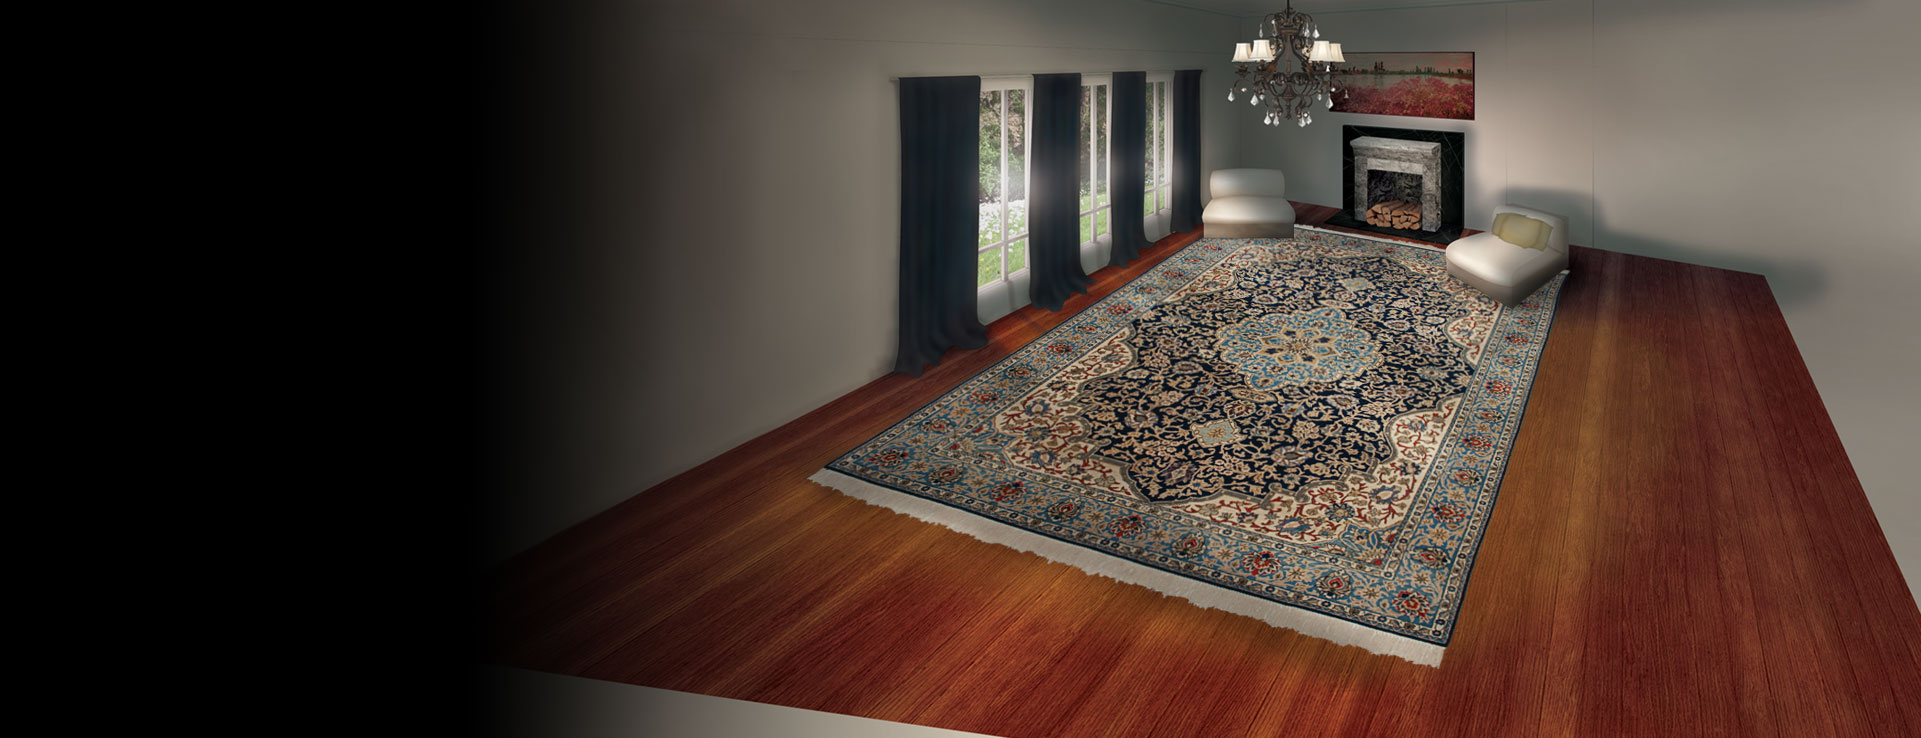 Large Rugs & Carpets